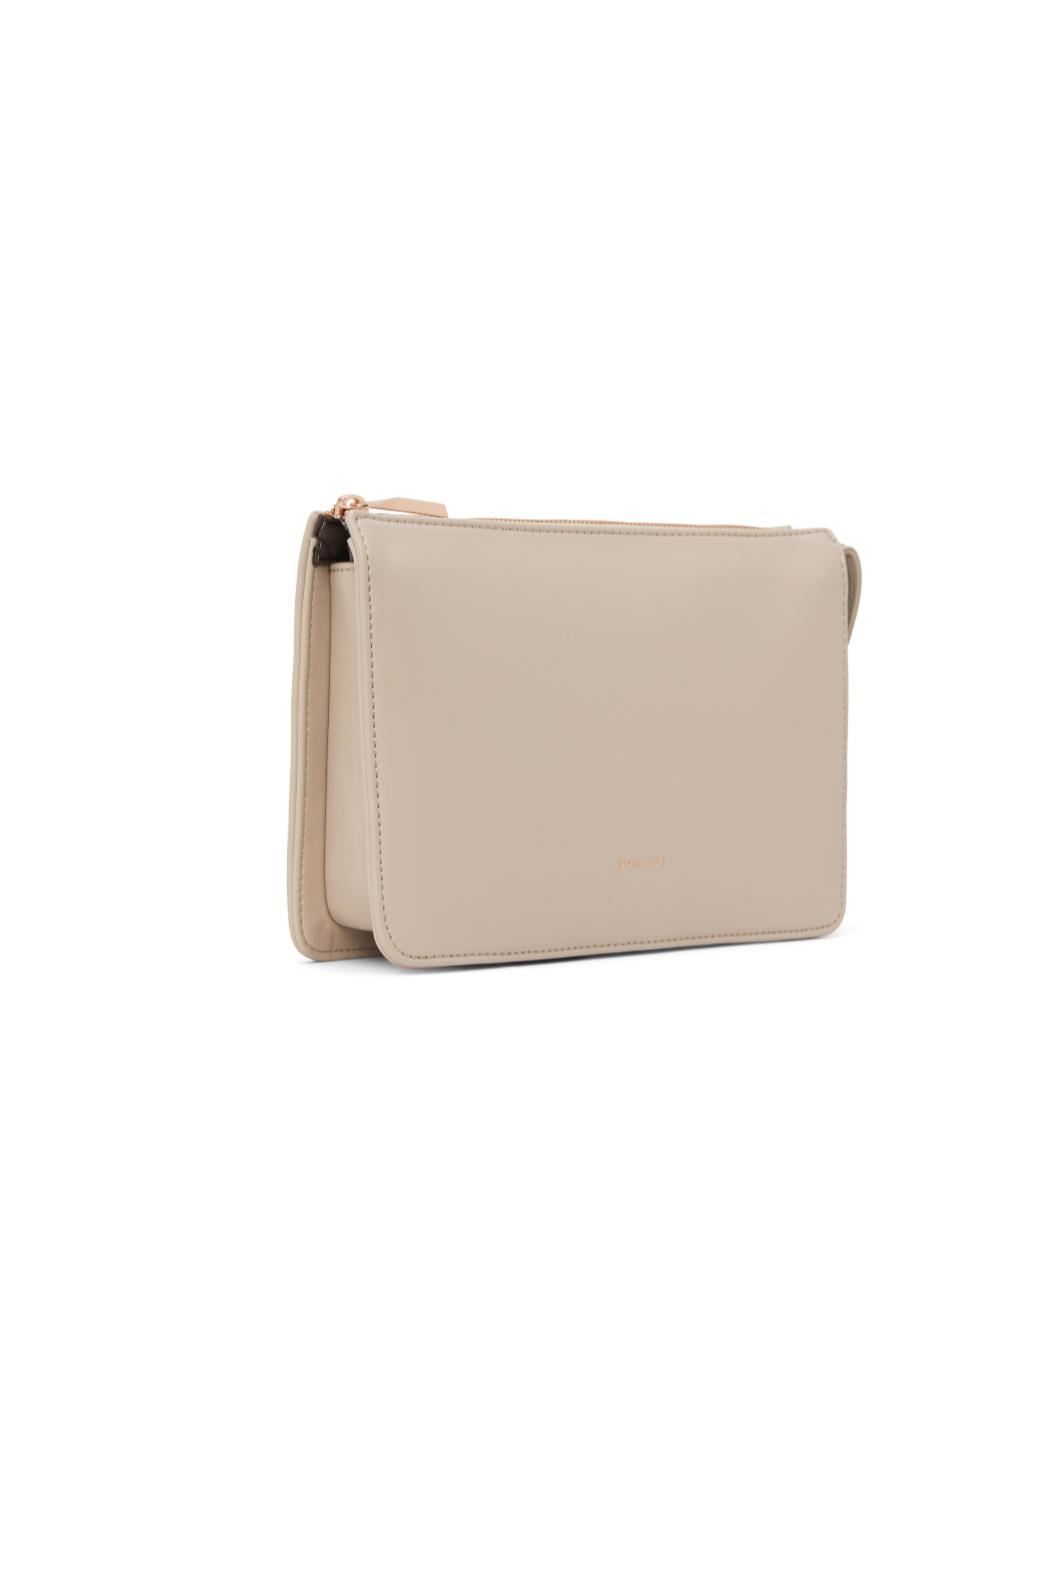 Matt & Nat Tori Vegan Crossbody Bag - Front Cropped Image